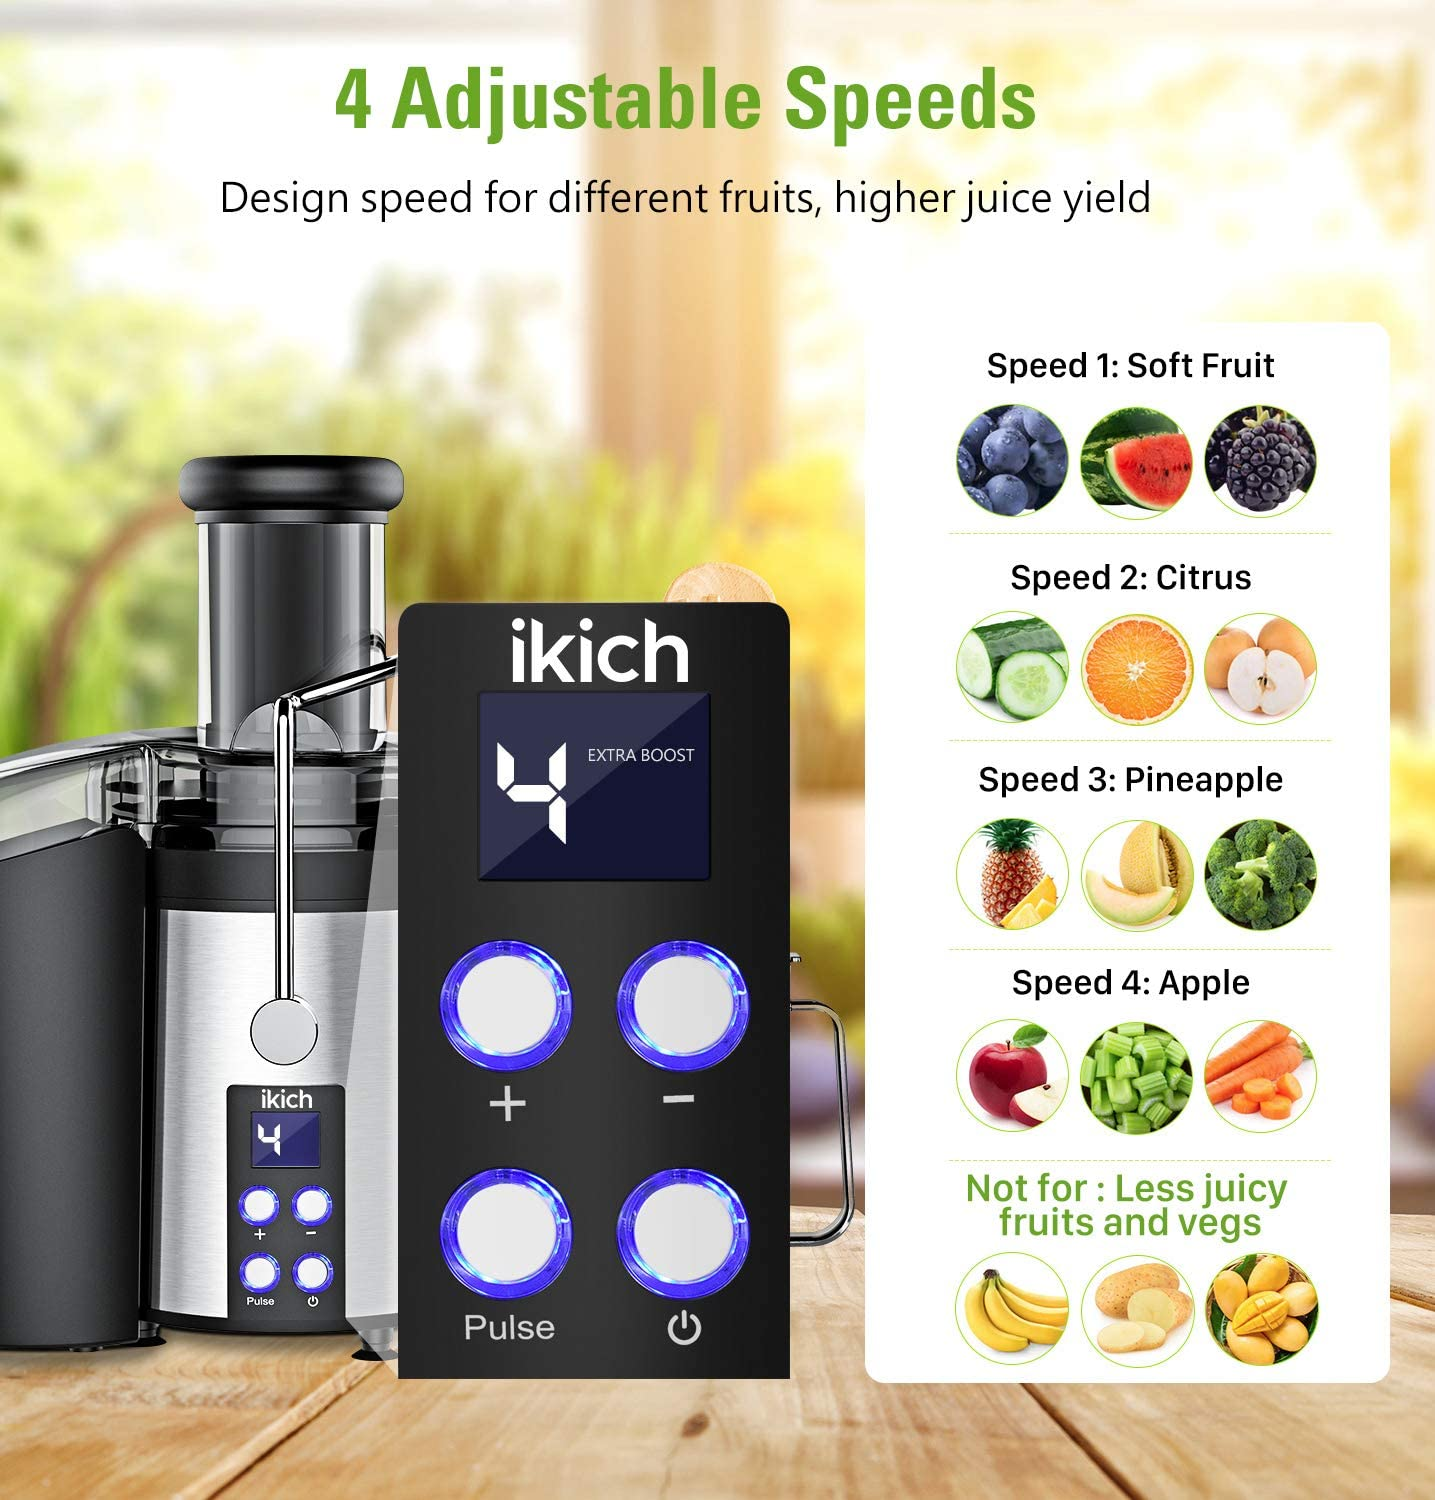 IKICH Centrifugal Juicer 2019 Upgrade 4 Speed Juice Extractor Creates More Juice and High Nutrient, Digital Display Real 3 Feeder Chute Juicer Machine with 16oz Portable Bottle and Recipes